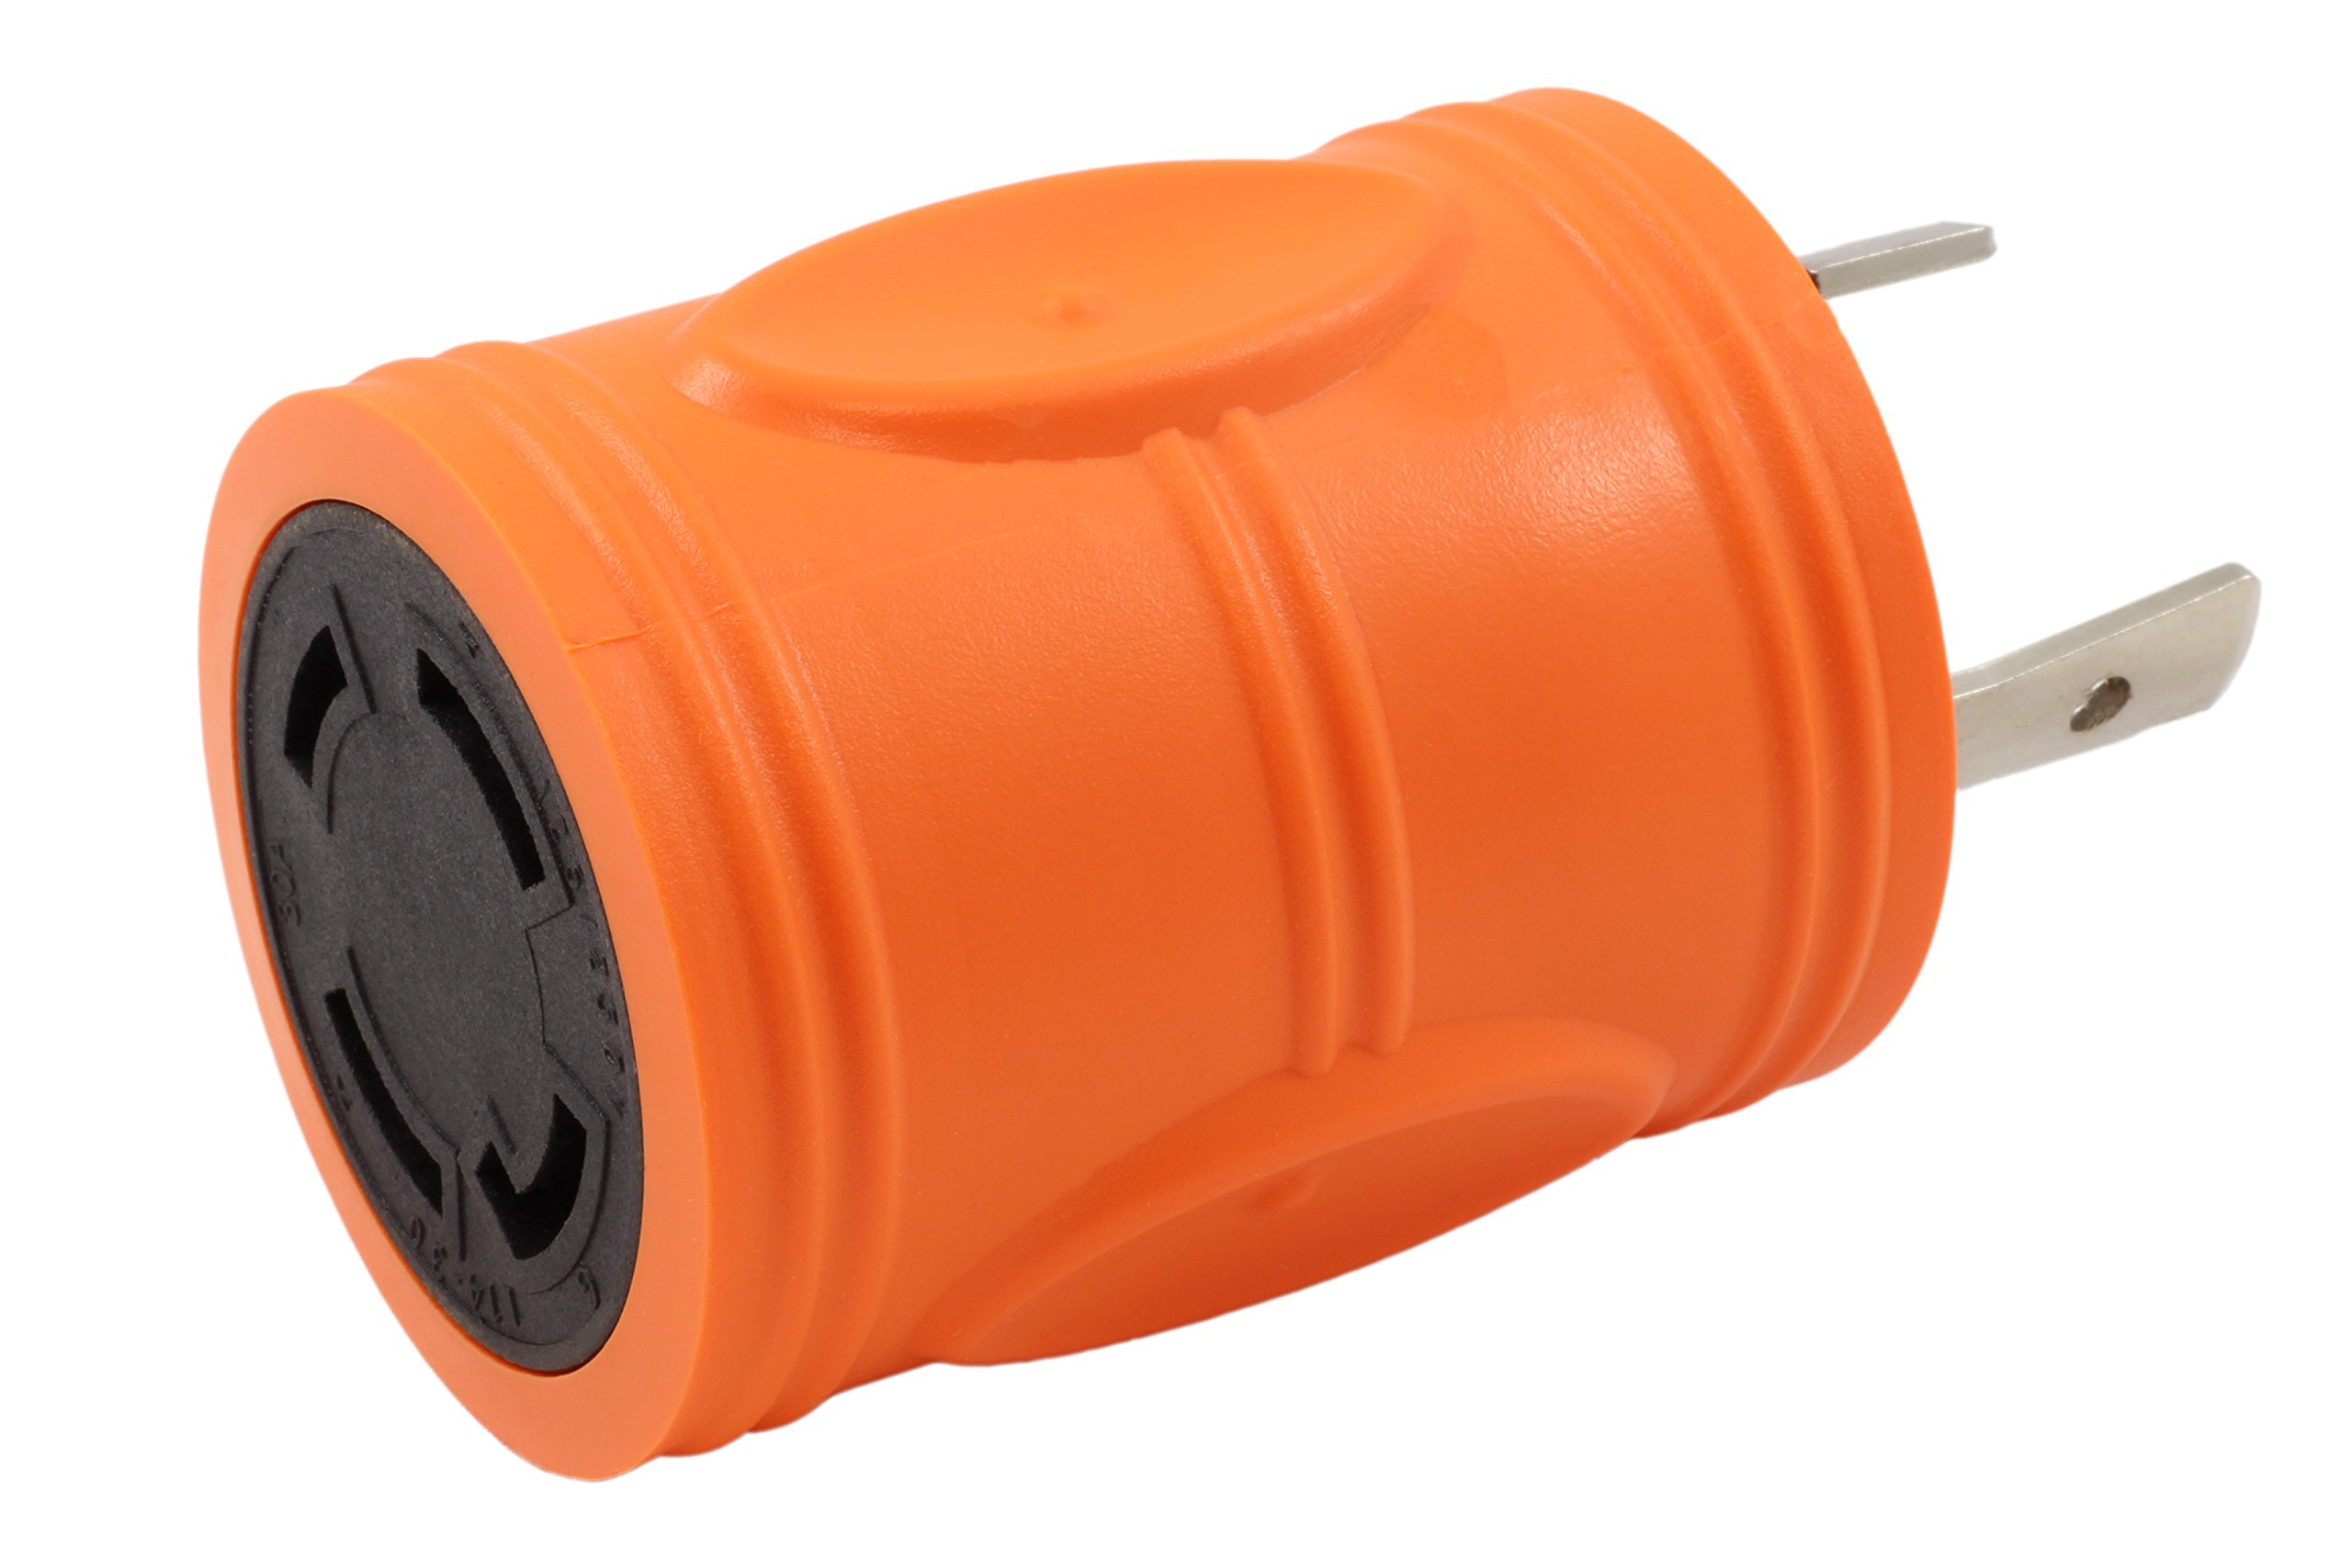 AC WORKS [ADL630L1430] Locking Adapter L6-30P 30Amp 250Volt Locking Plug to 4-Prong 30Amp L14-30R Adapter